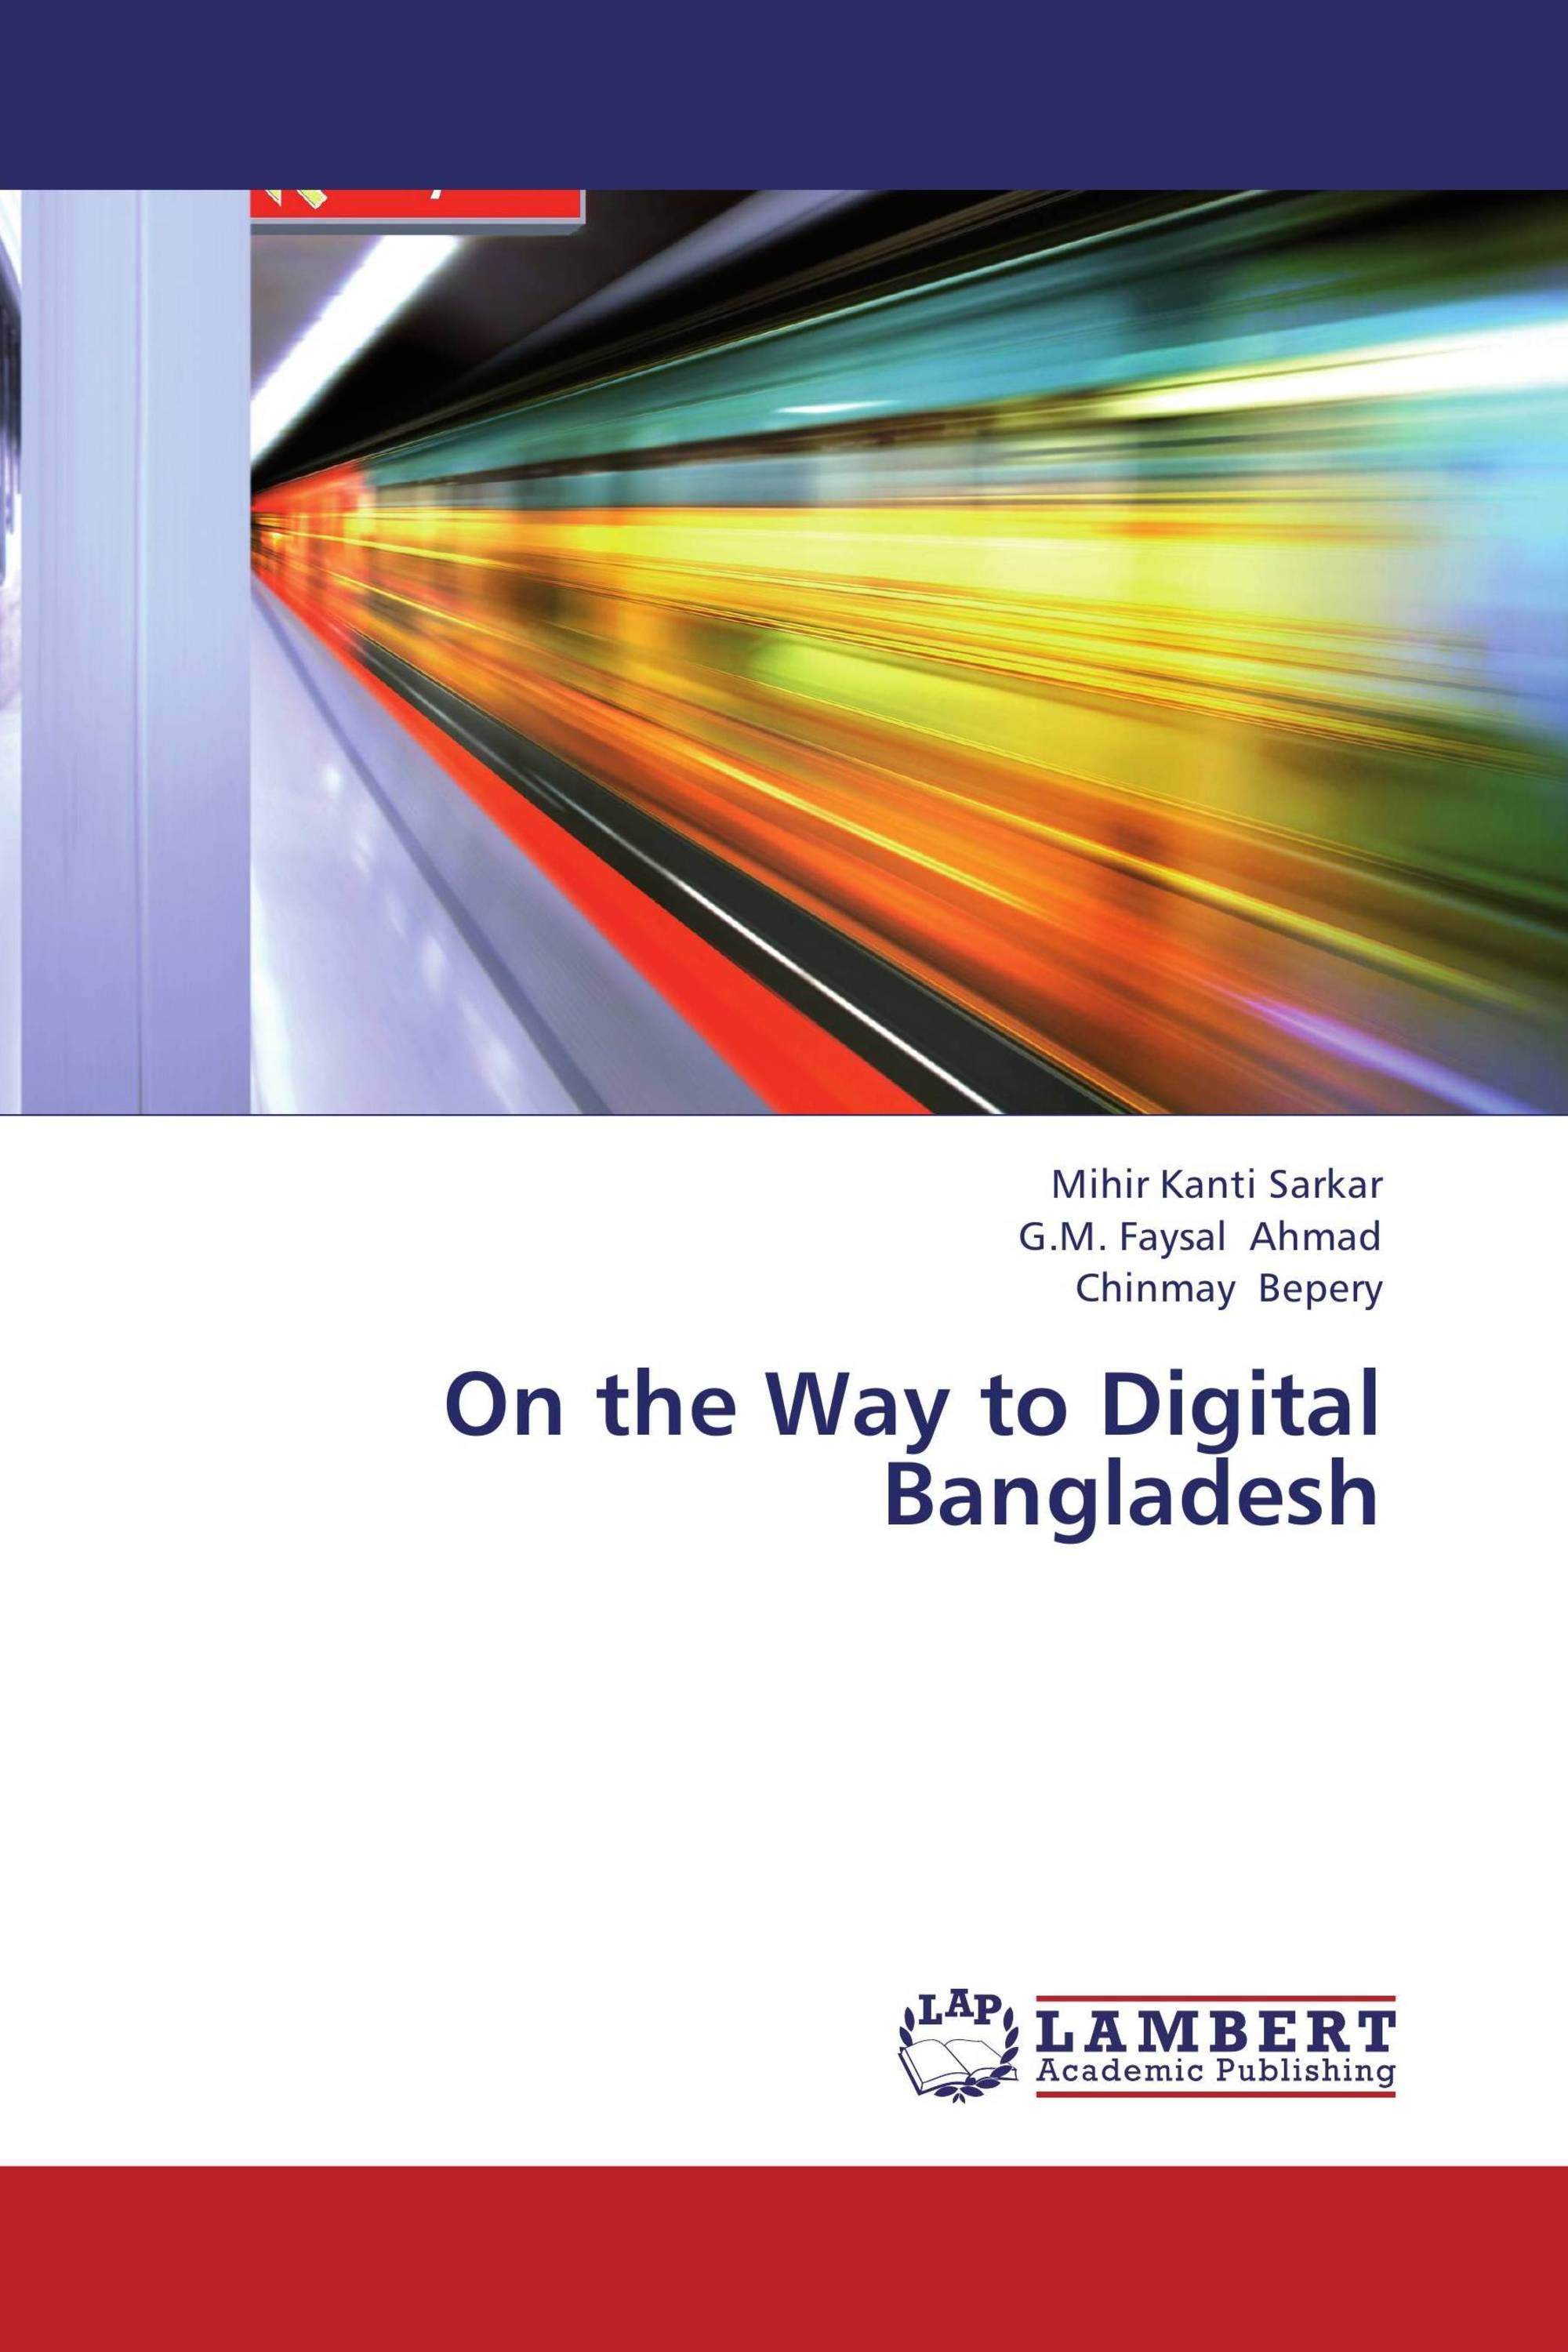 On the Way to Digital Bangladesh